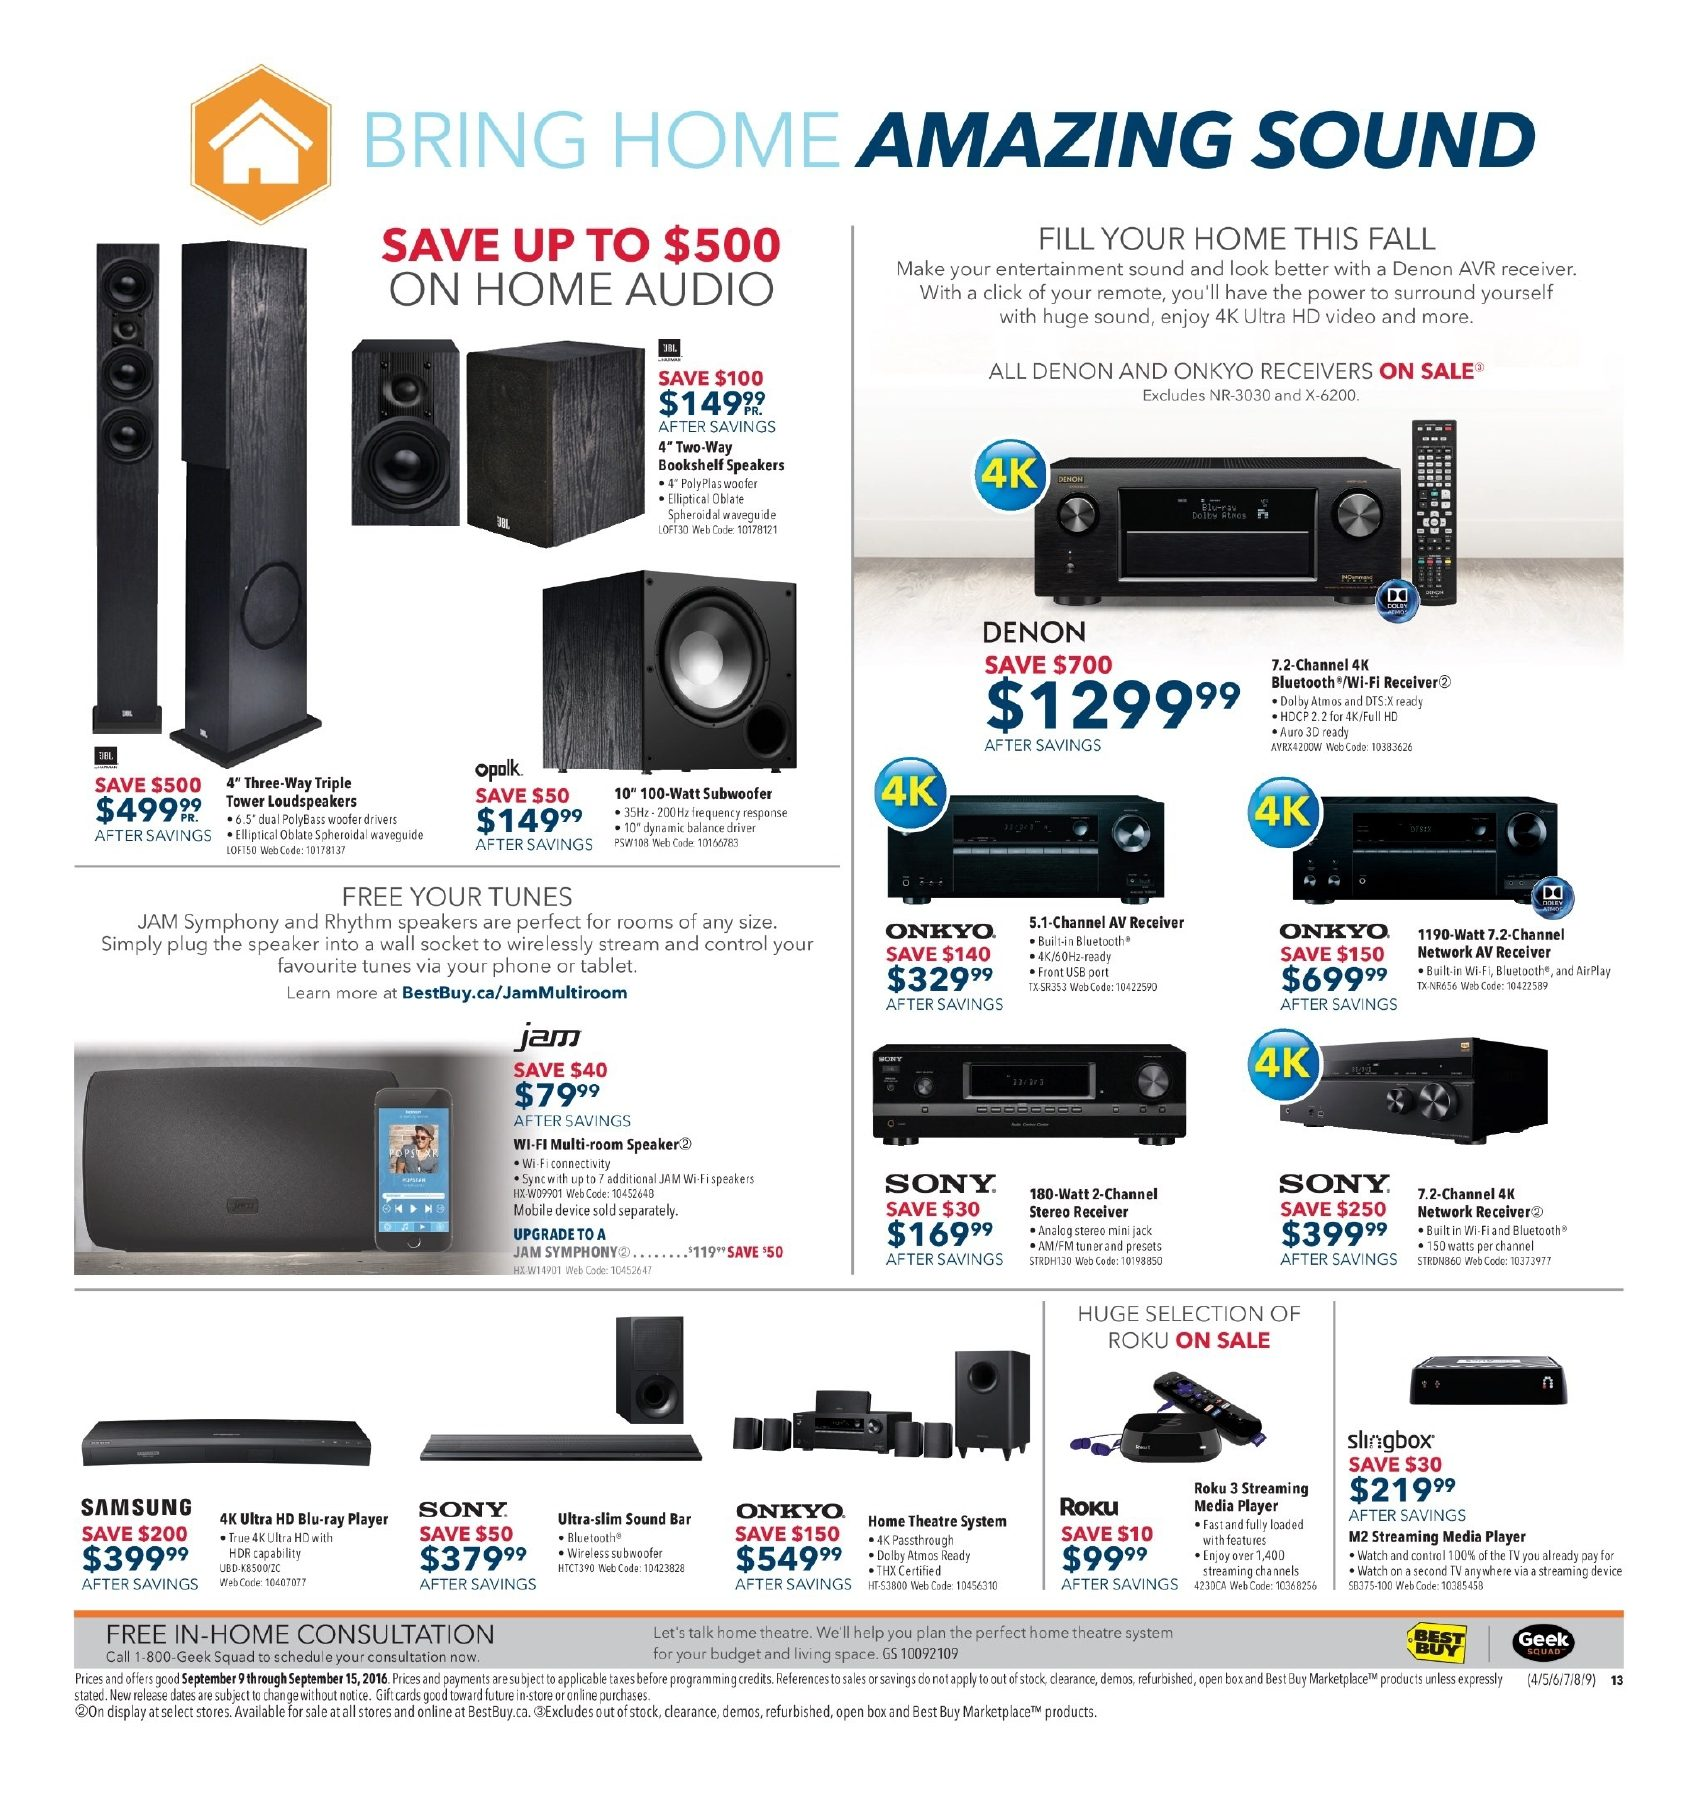 Best buy weekly flyer weekly laptops youll love sep 9 15 best buy weekly flyer weekly laptops youll love sep 9 15 redflagdeals fandeluxe Image collections